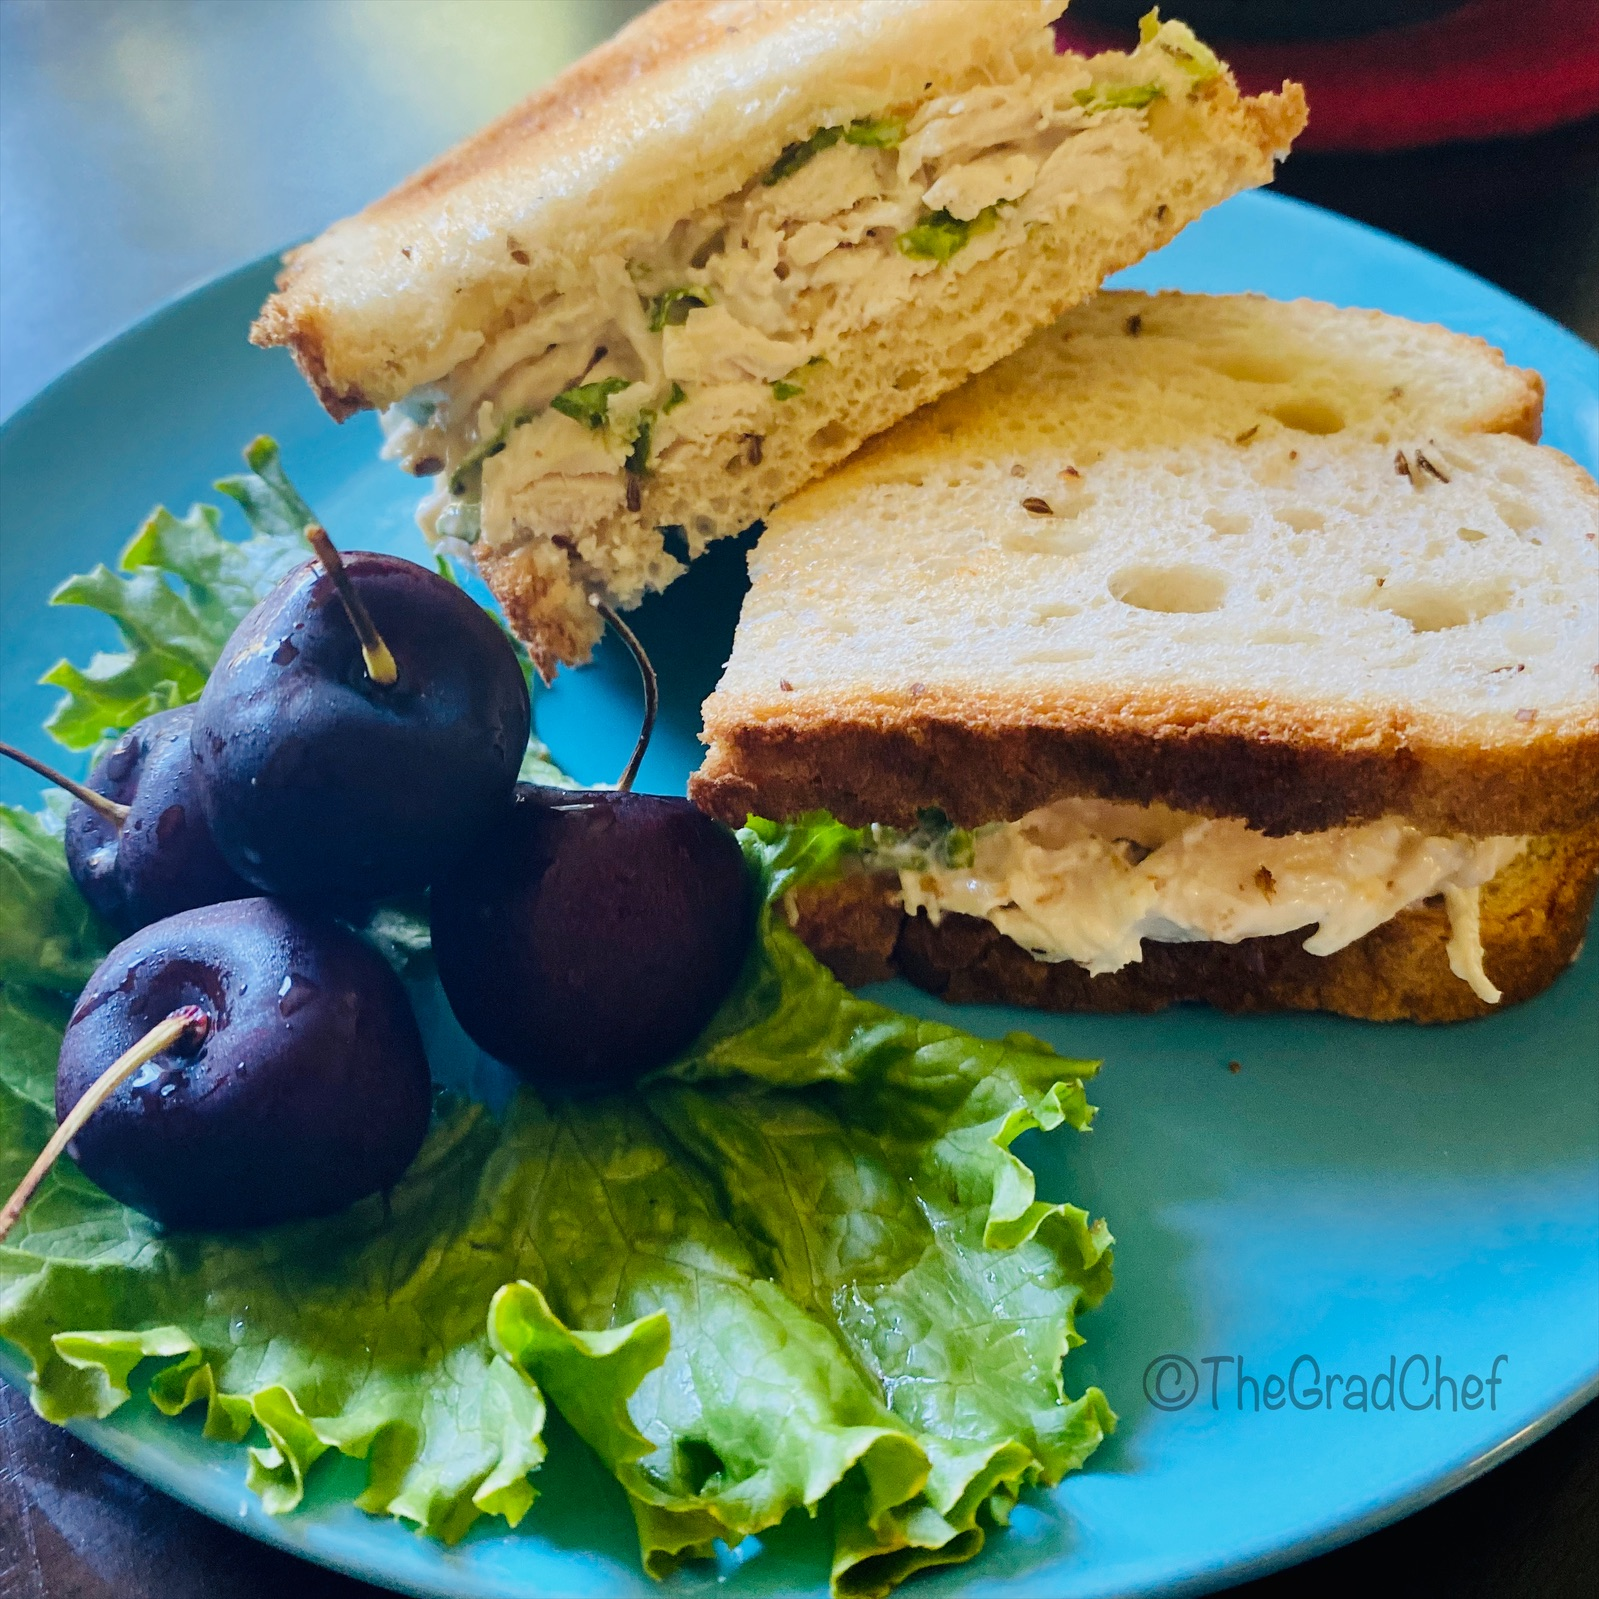 CHICKEN AND MAYO SANDWICH